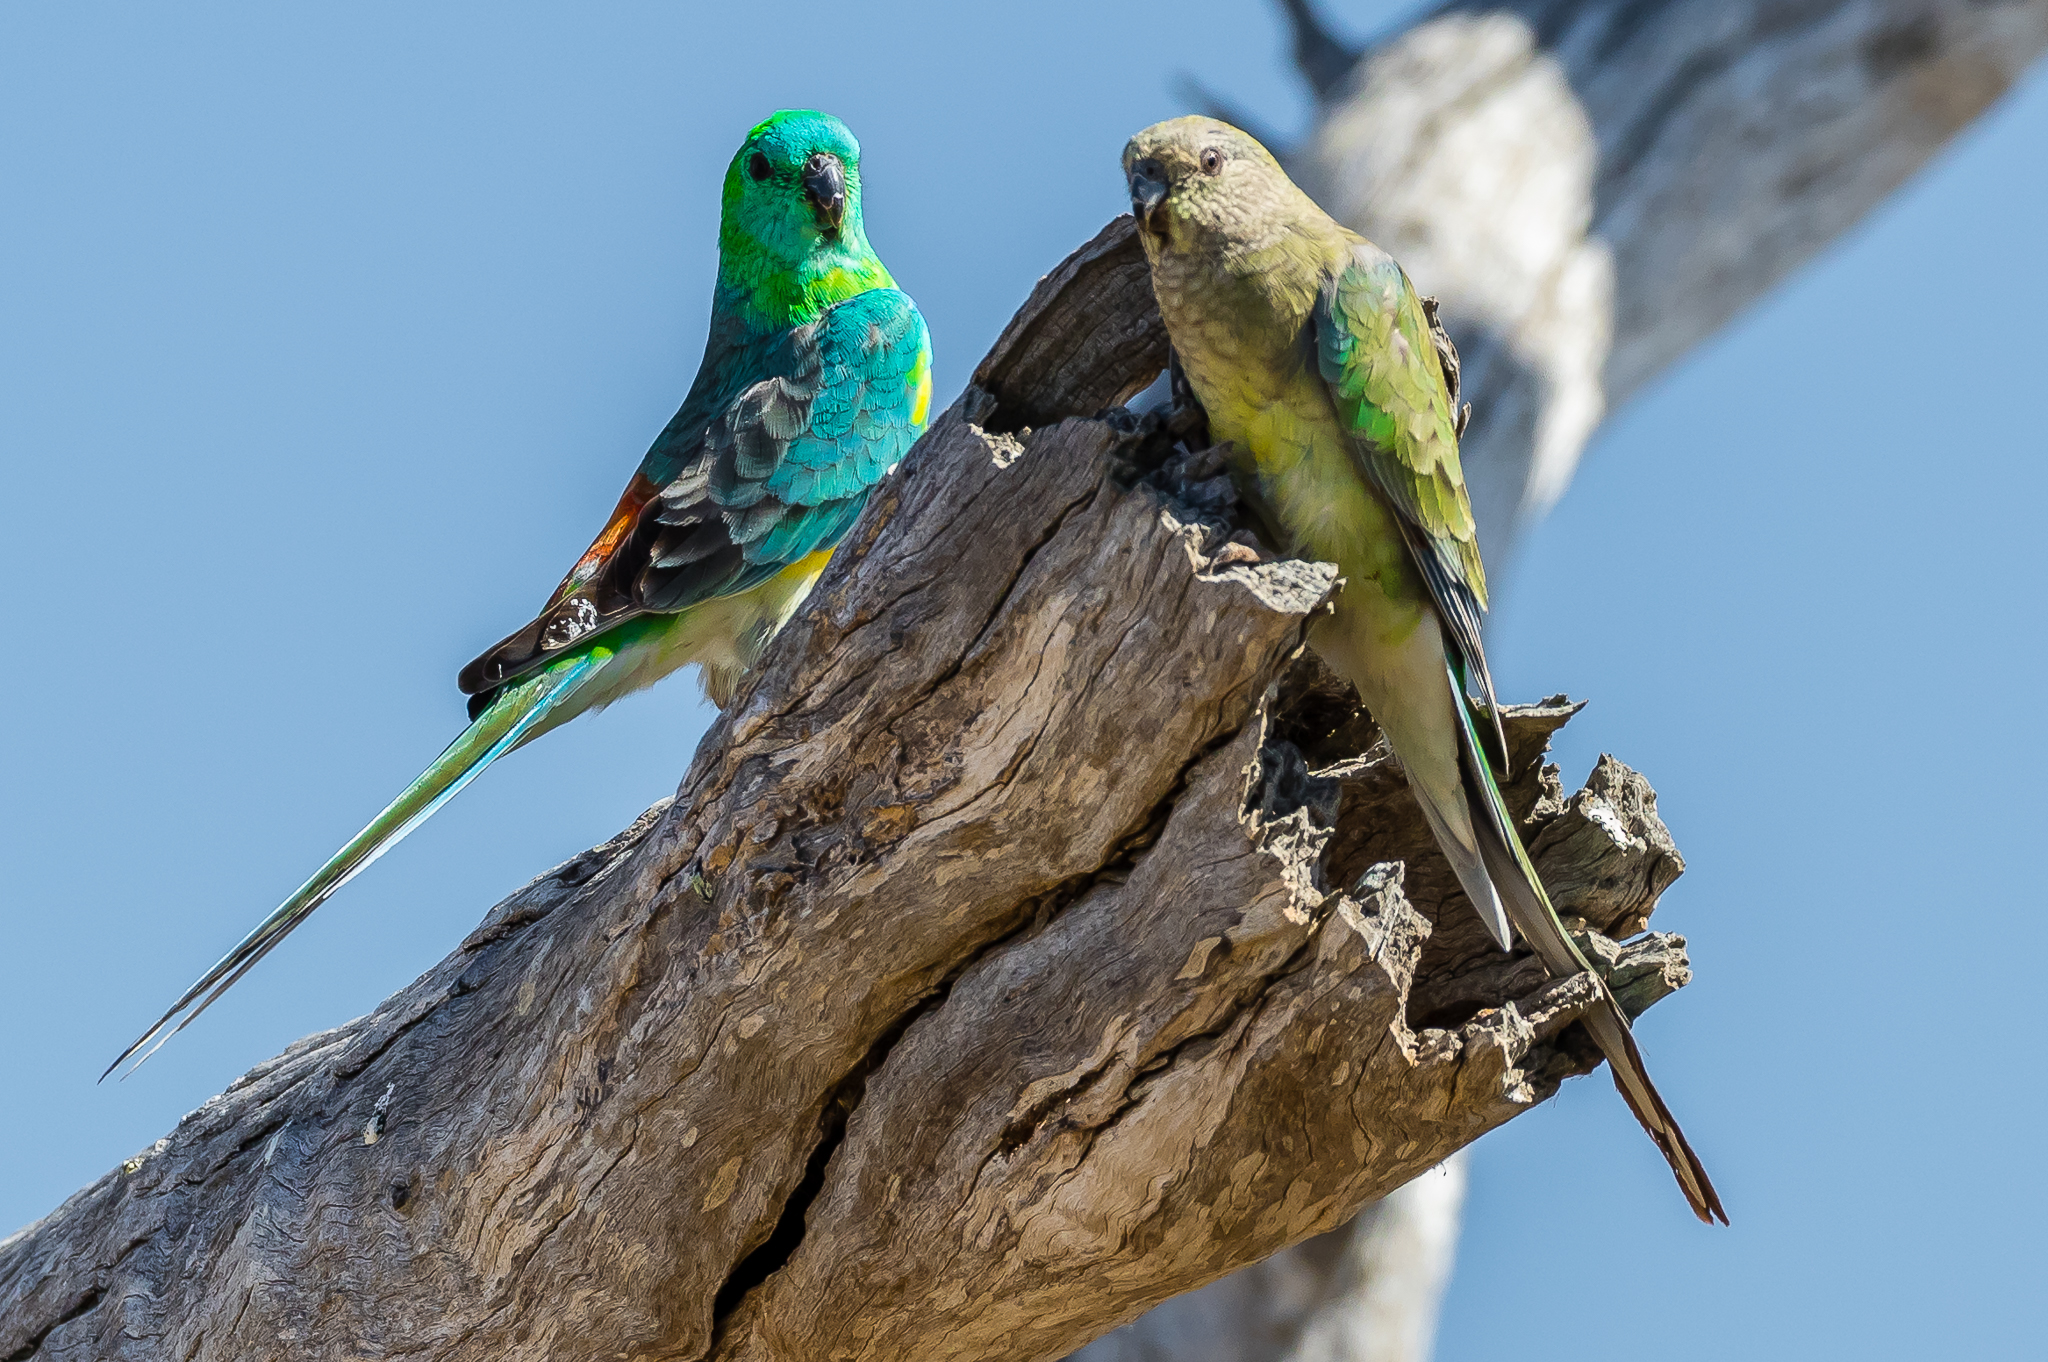 """Red-rumped Parrots (28 cm) inhabit the open grasslands and woodlands of south east Australia. They eat grass seeds and will also feed on seeds and fruits from trees. Like the Ringnecks, Red-winged, Hooded and Mulga Parrots they are""""true parrots""""."""